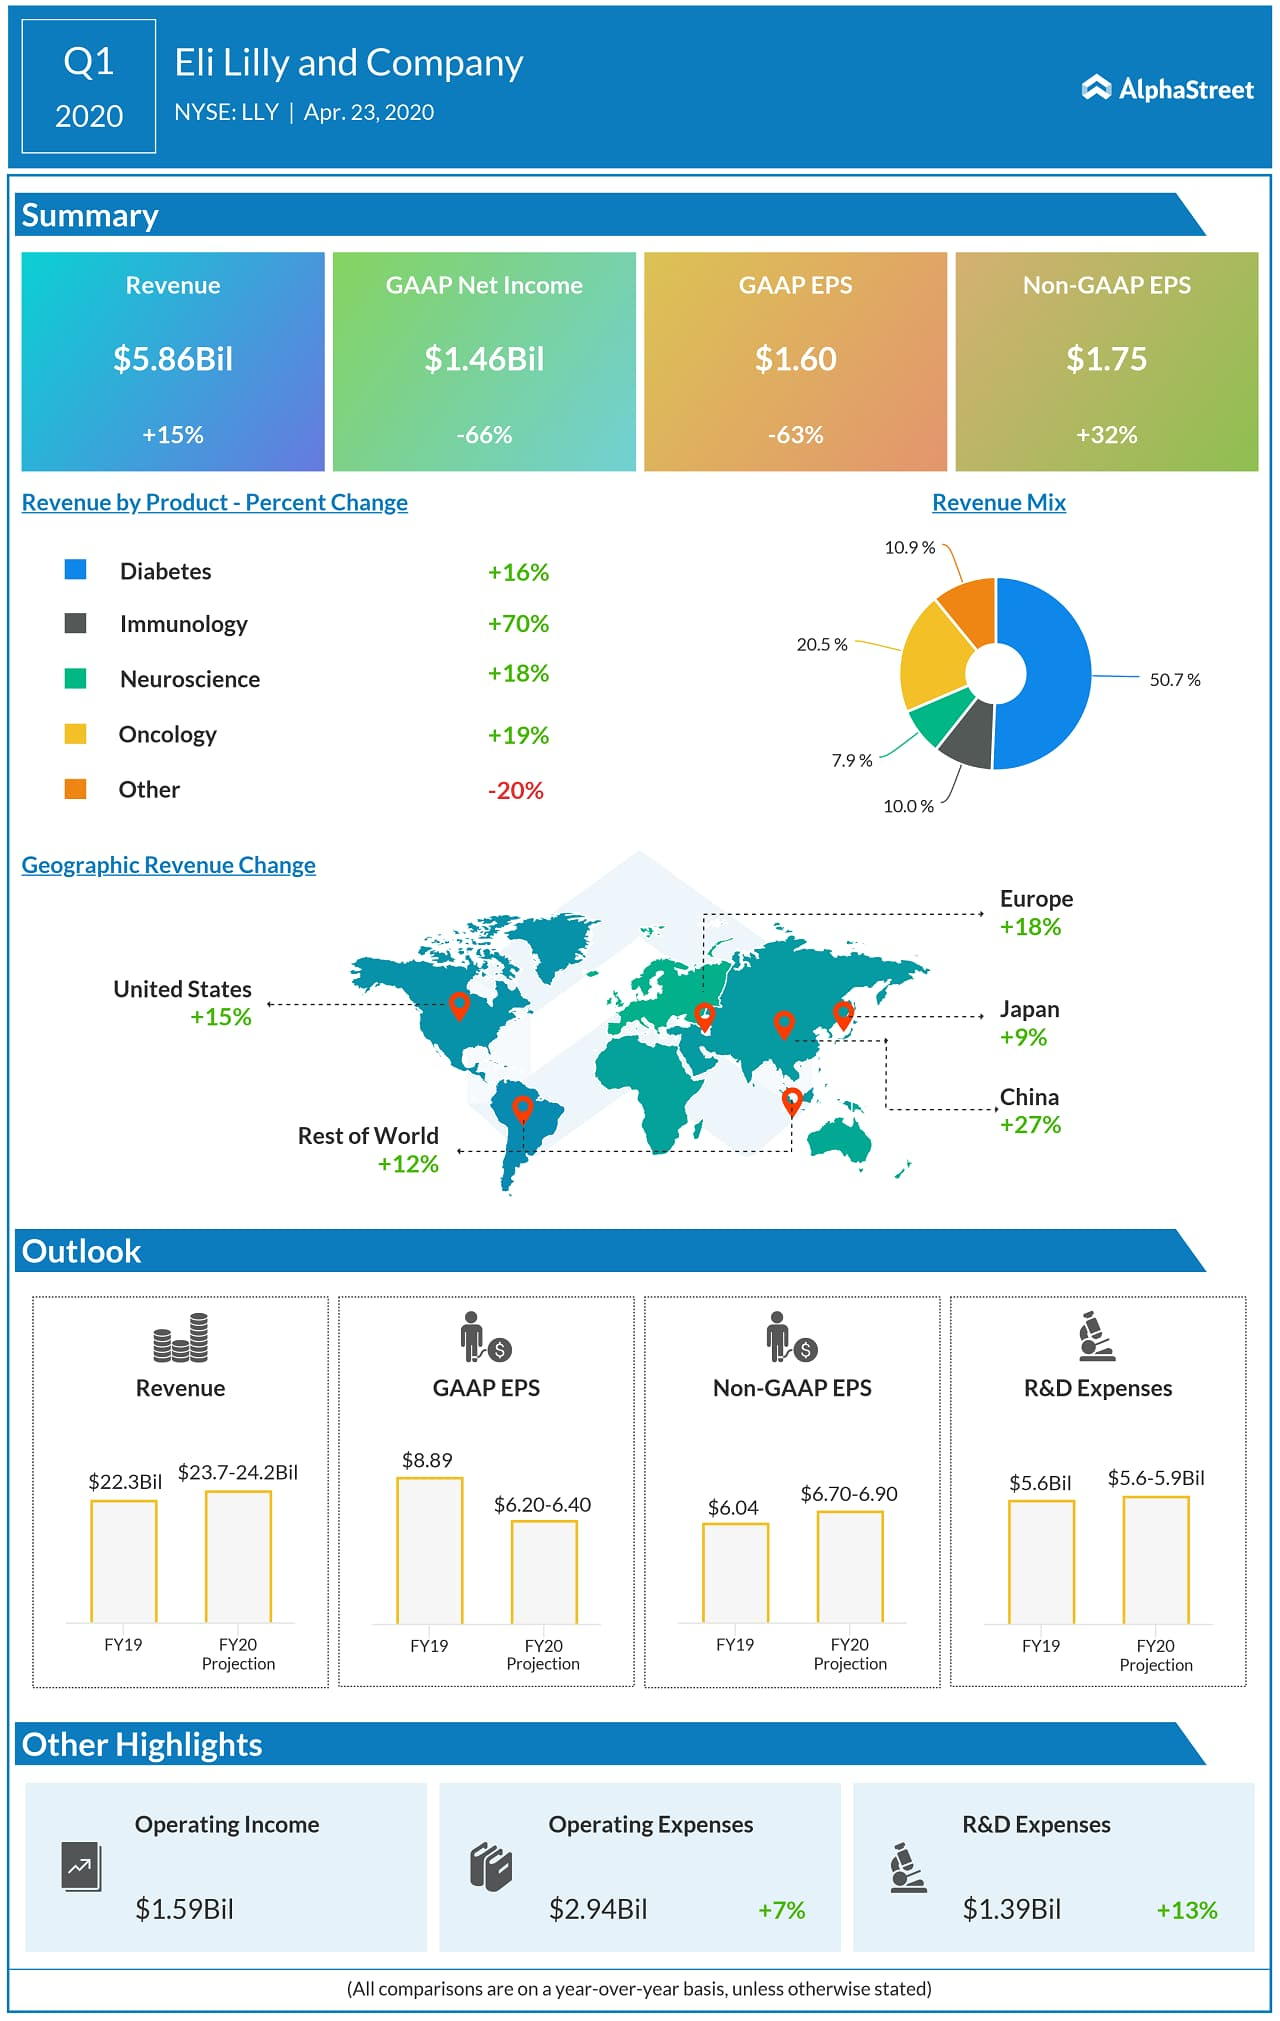 Eli Lilly Q1 2020 earnings infographic